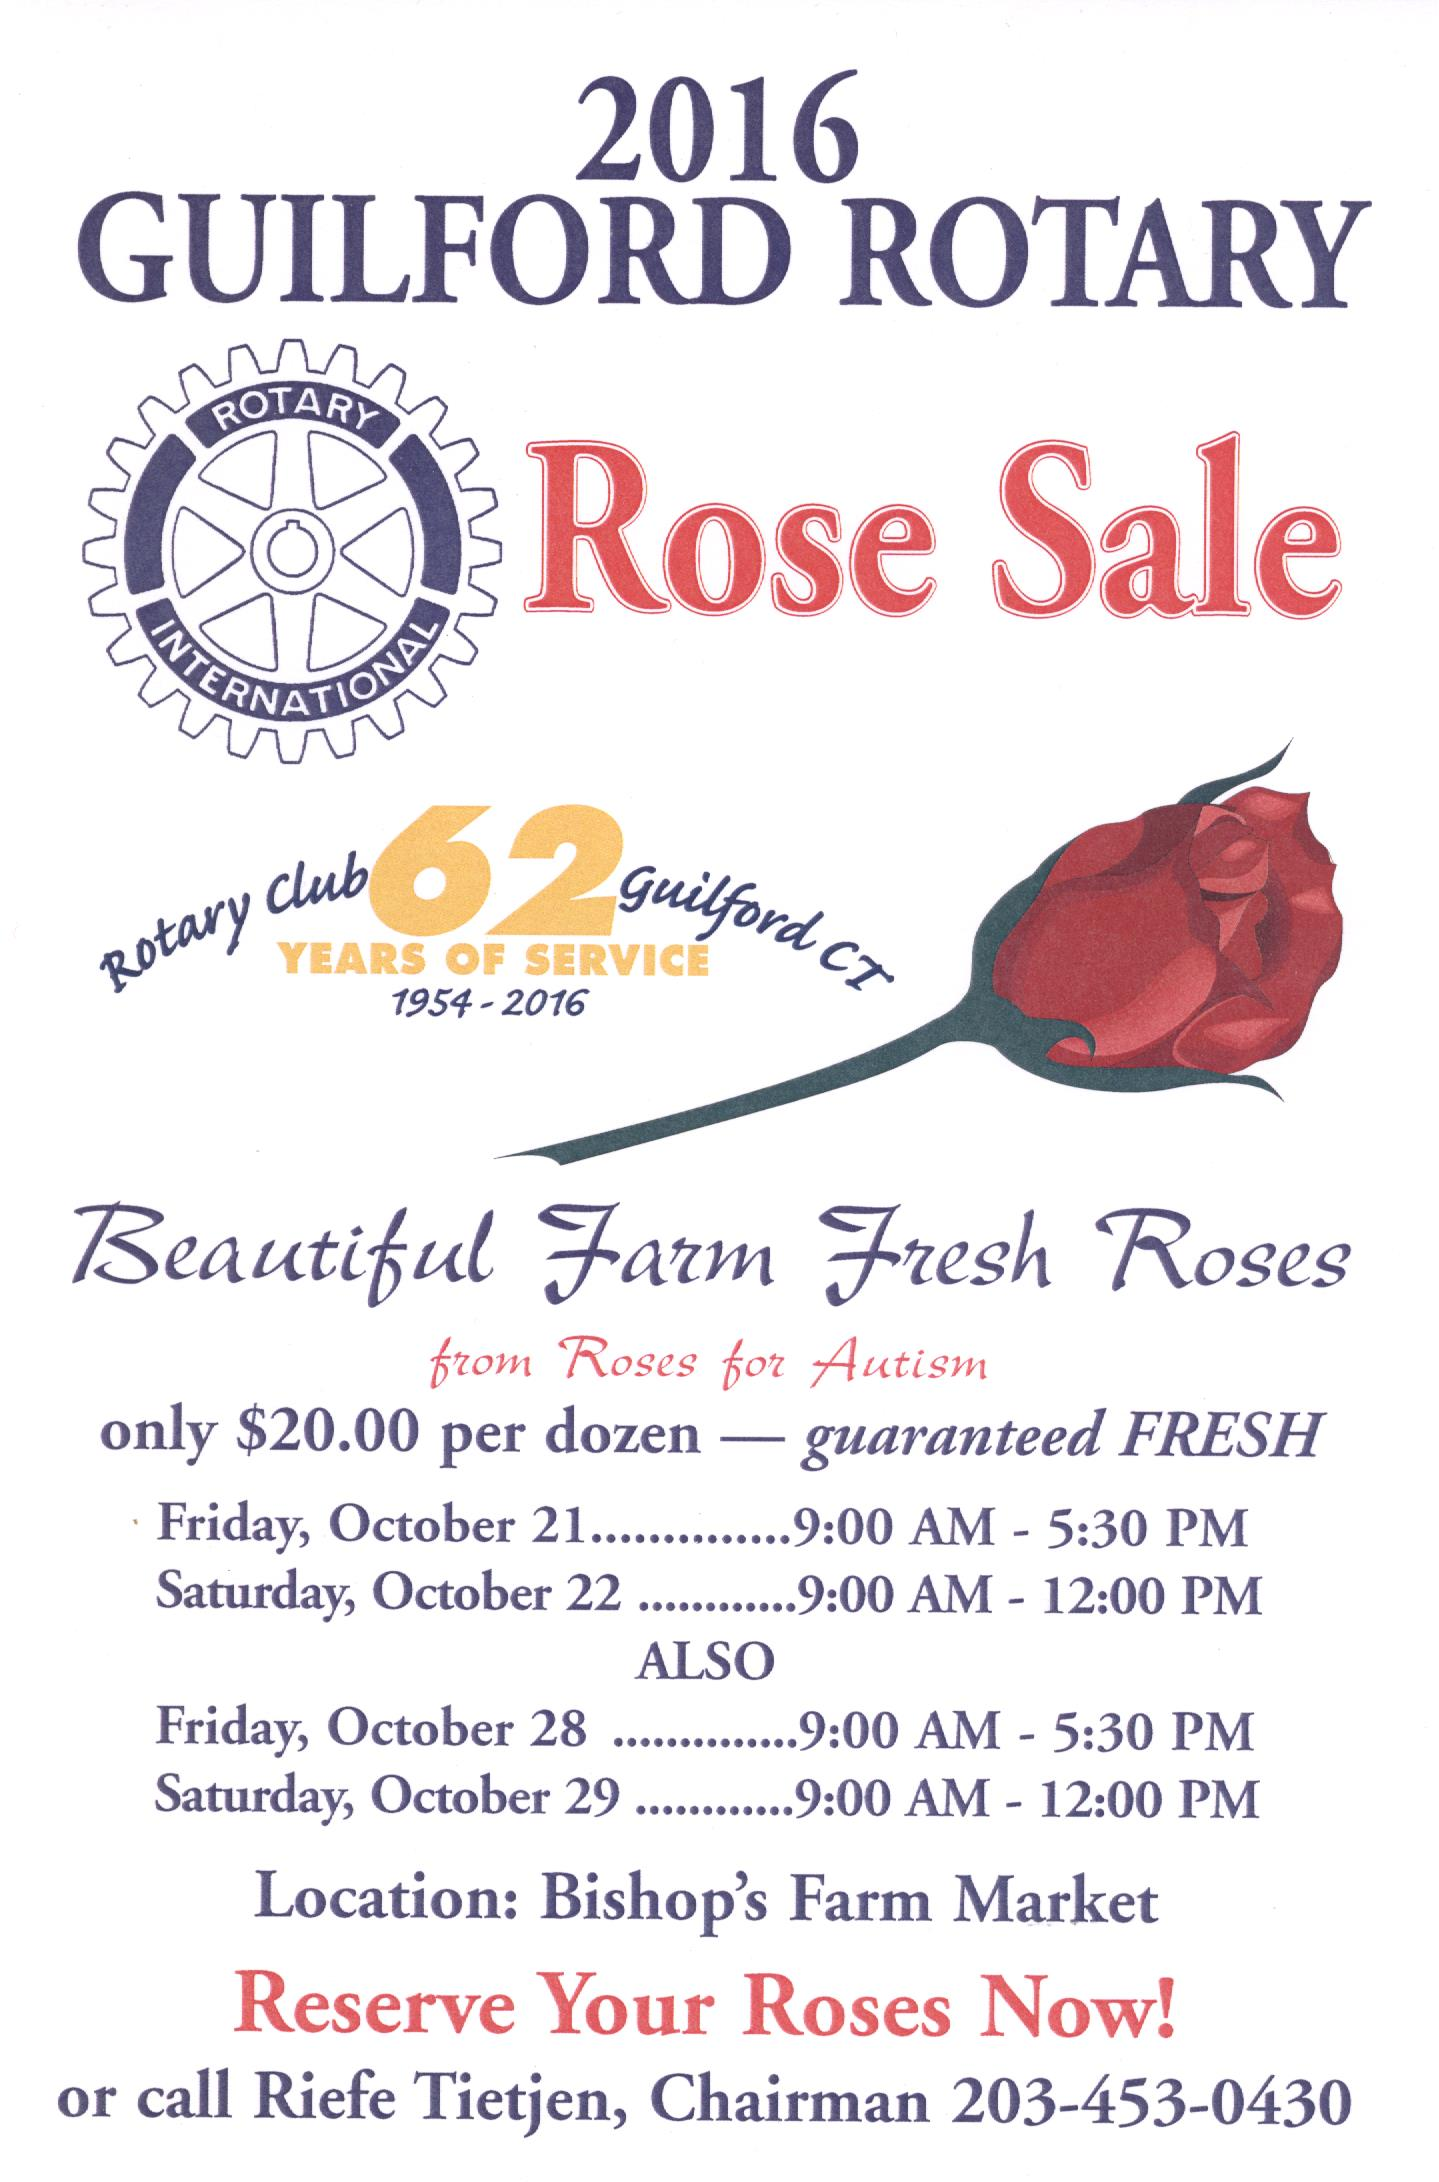 Guilford Rotary Rose Sale 2016 Poster